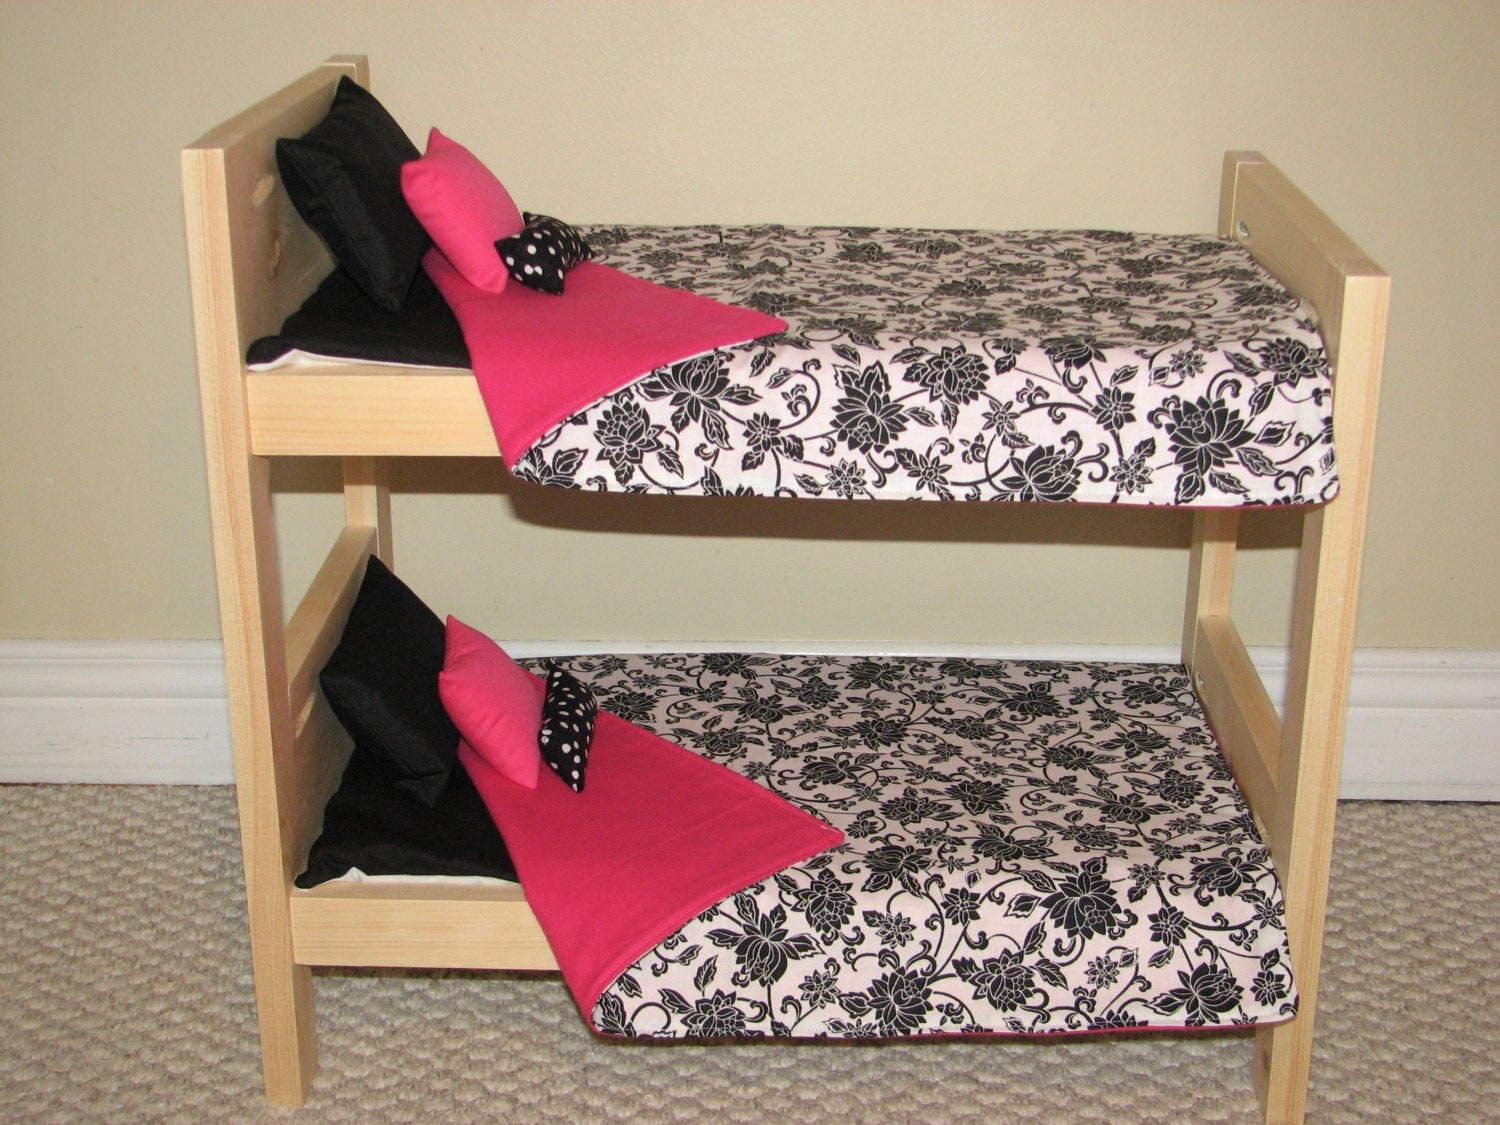 american girl doll bunk bed bedding set black by mamcreations. Black Bedroom Furniture Sets. Home Design Ideas